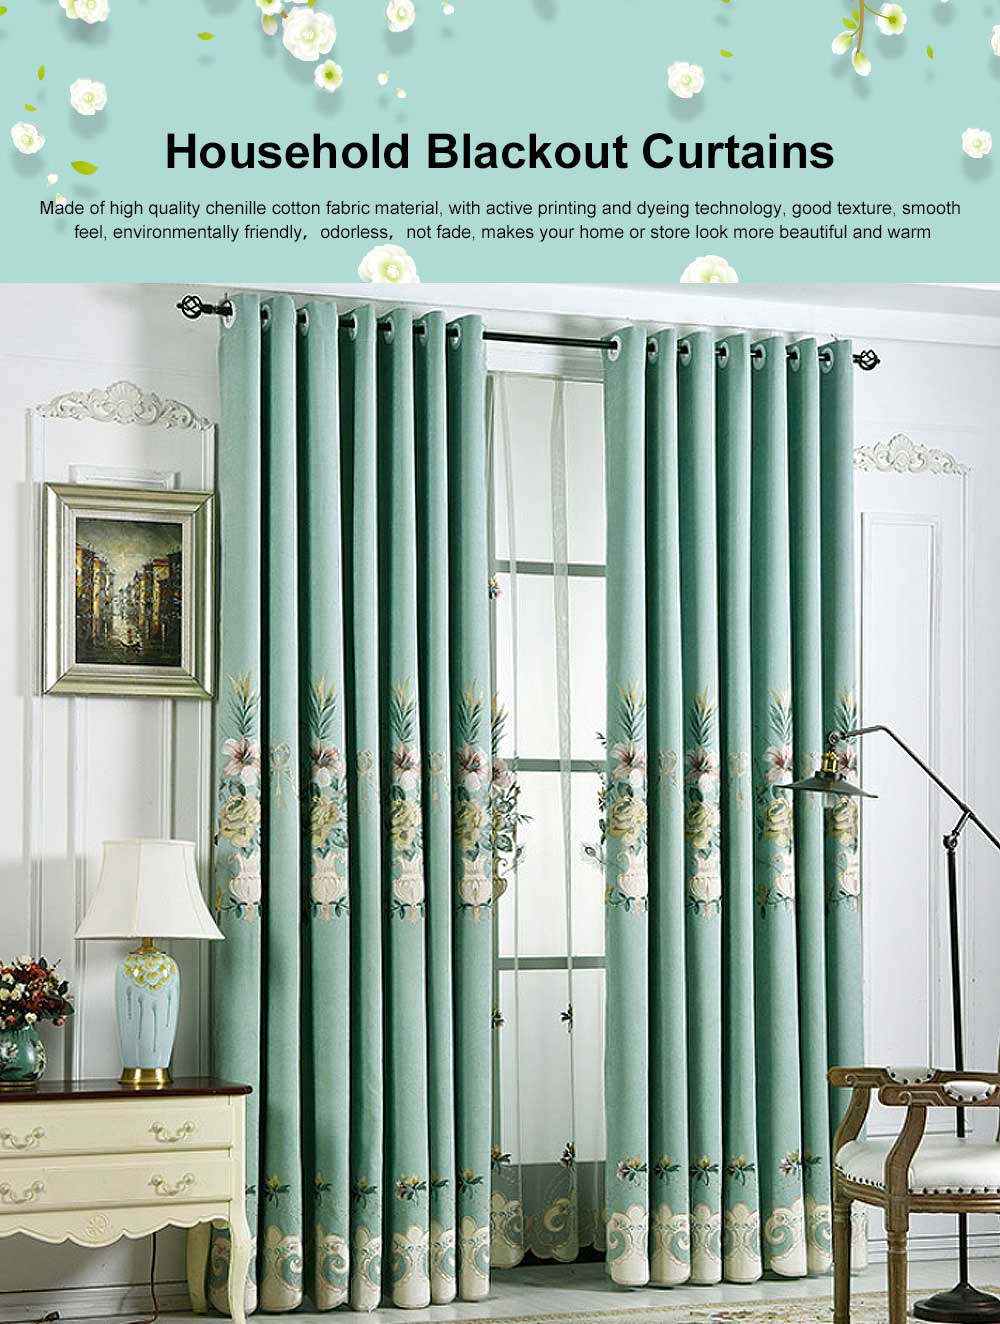 Modern Minimalist Curtains, Household Blackout Curtains for Living Room, Bedroom Chenille Floor Window Curtains 0